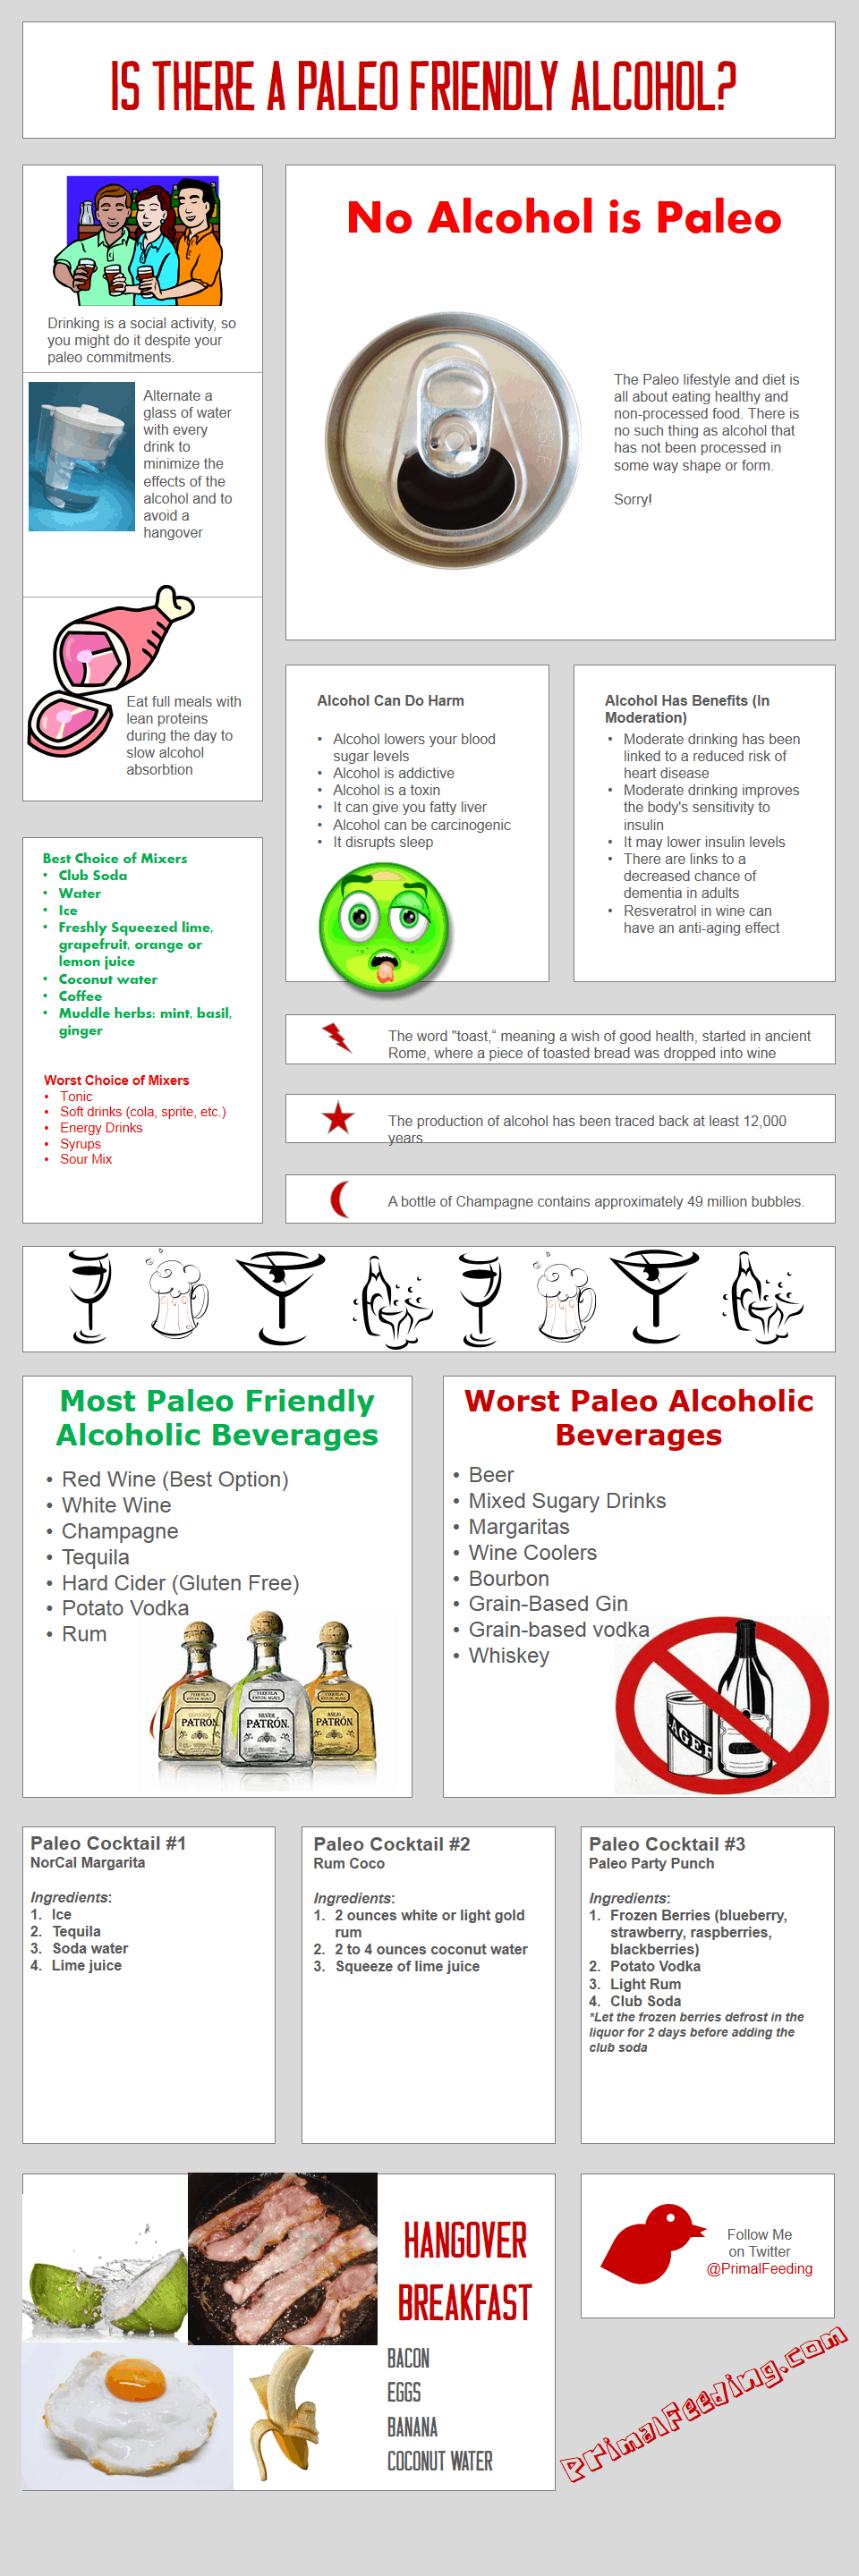 Paleo Friendly Alcohol Guide